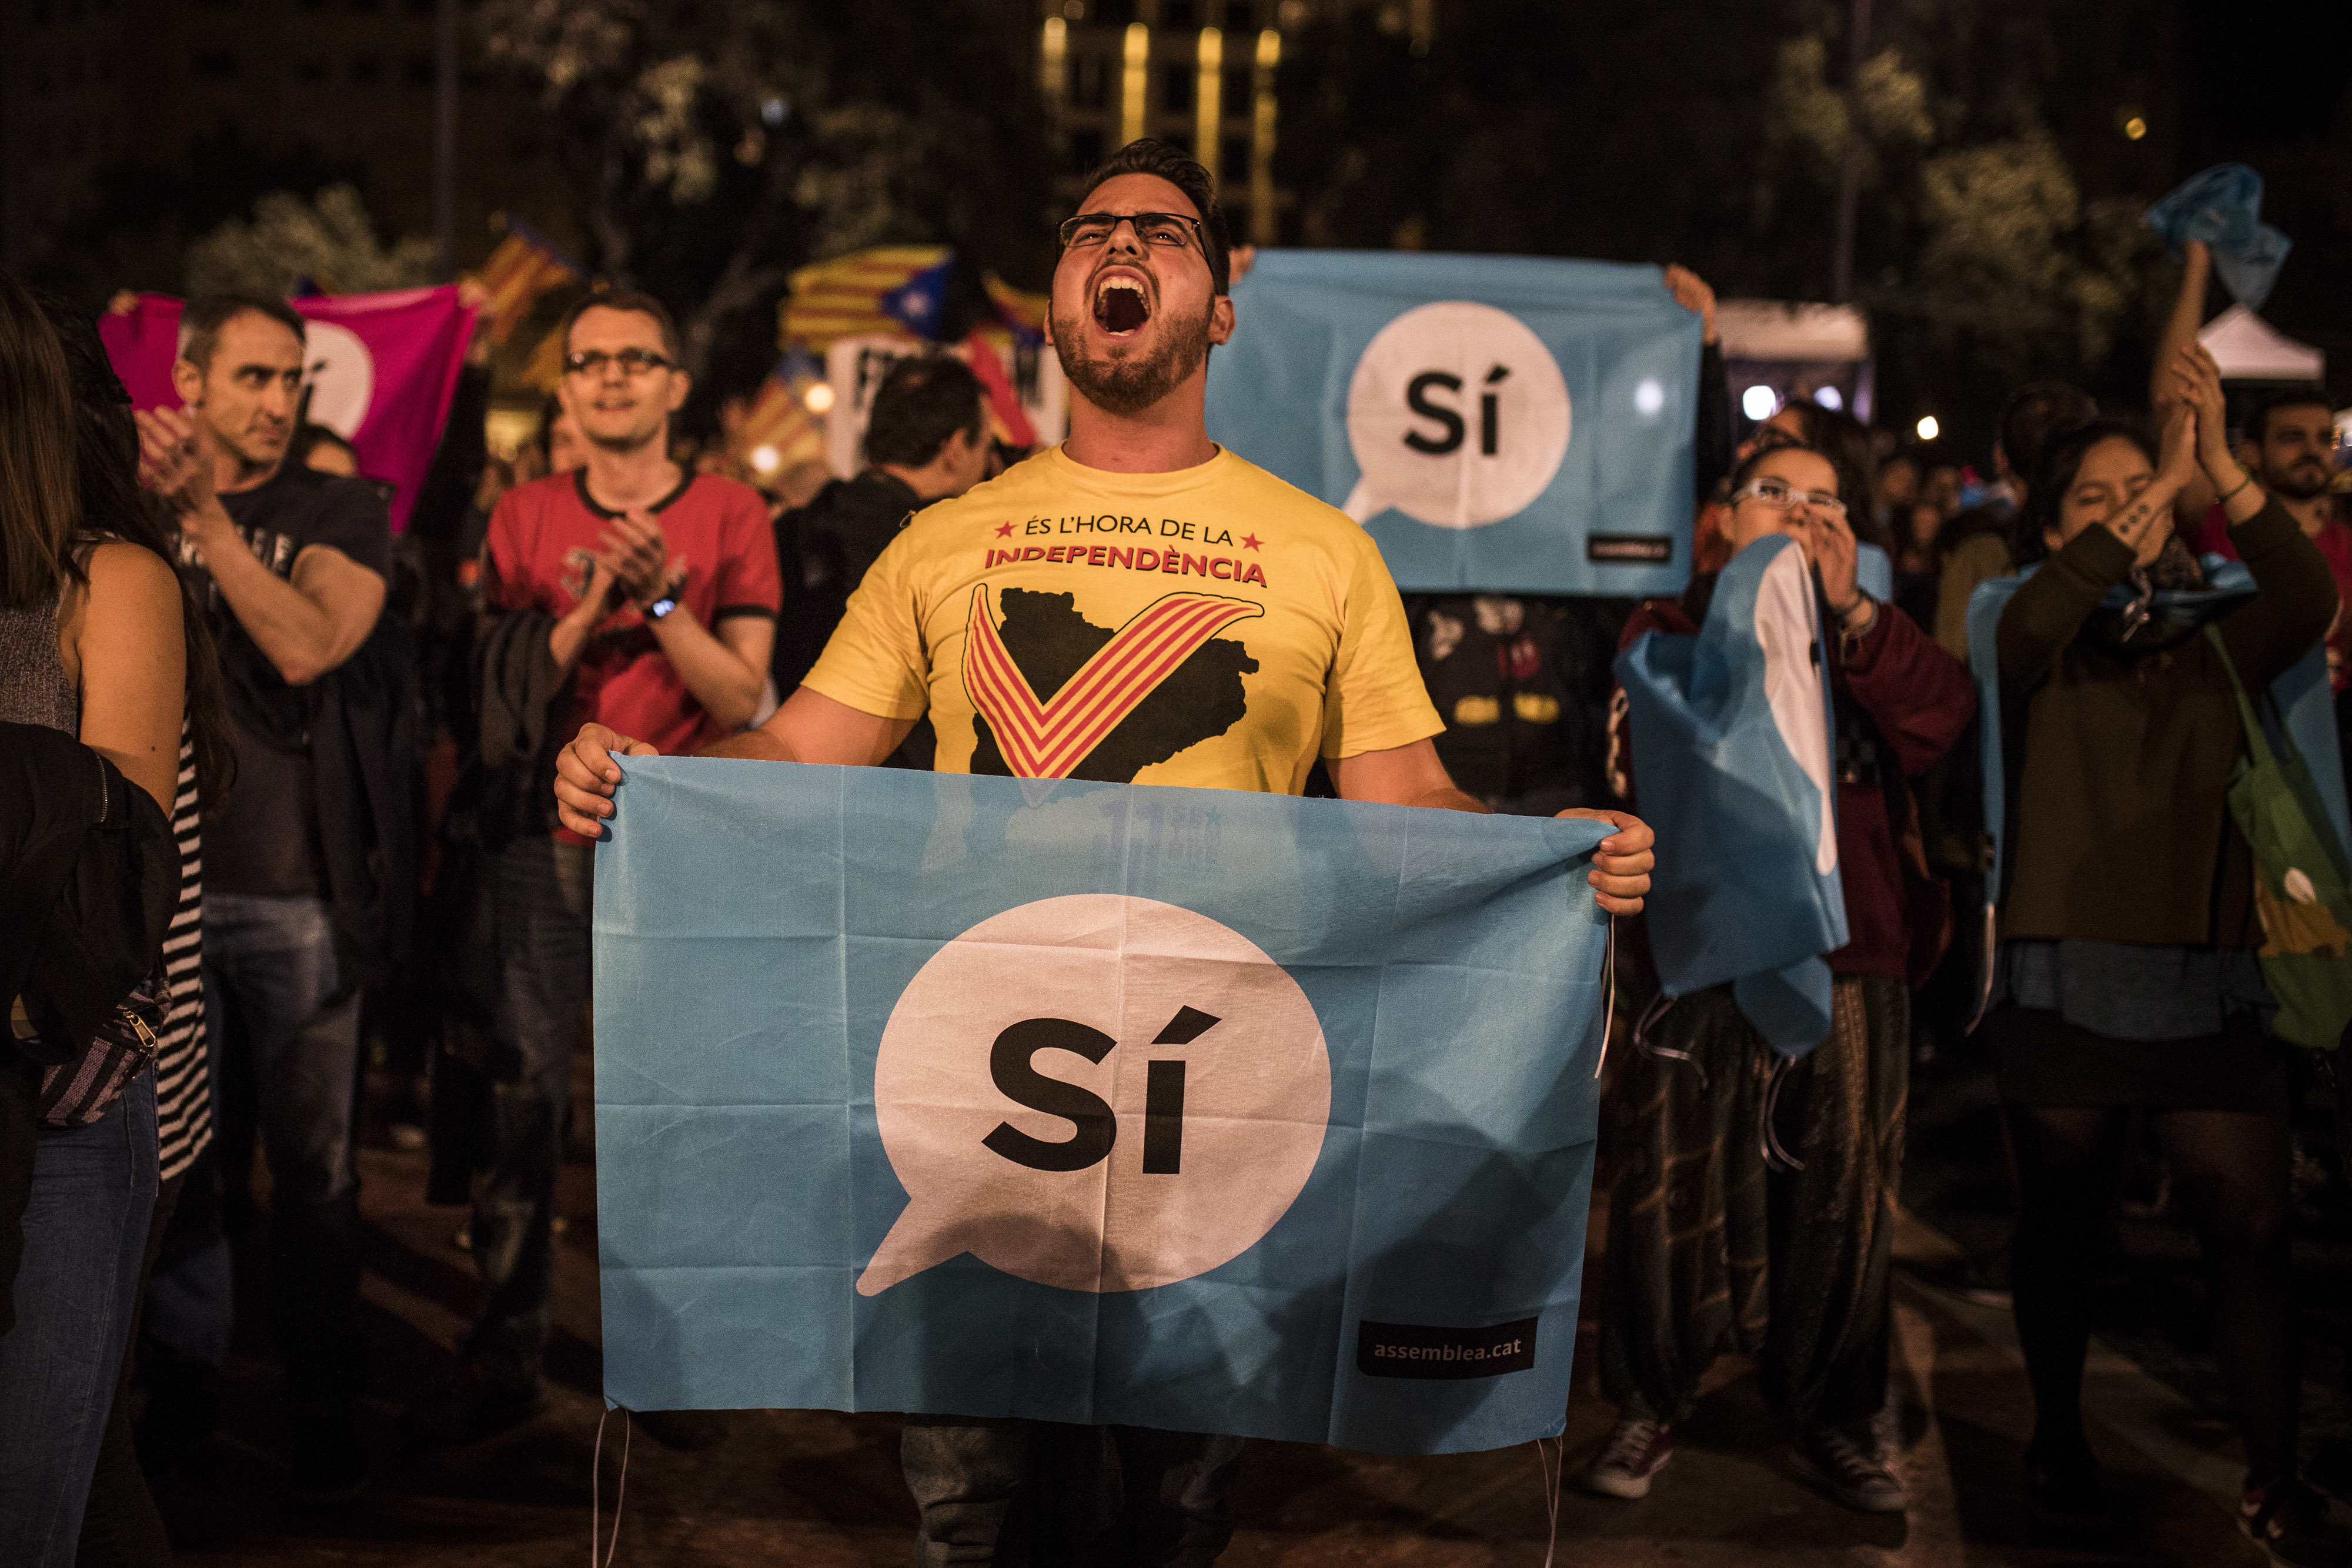 Catalan independence supporters gather in Barcelona's main square on Oct. 1